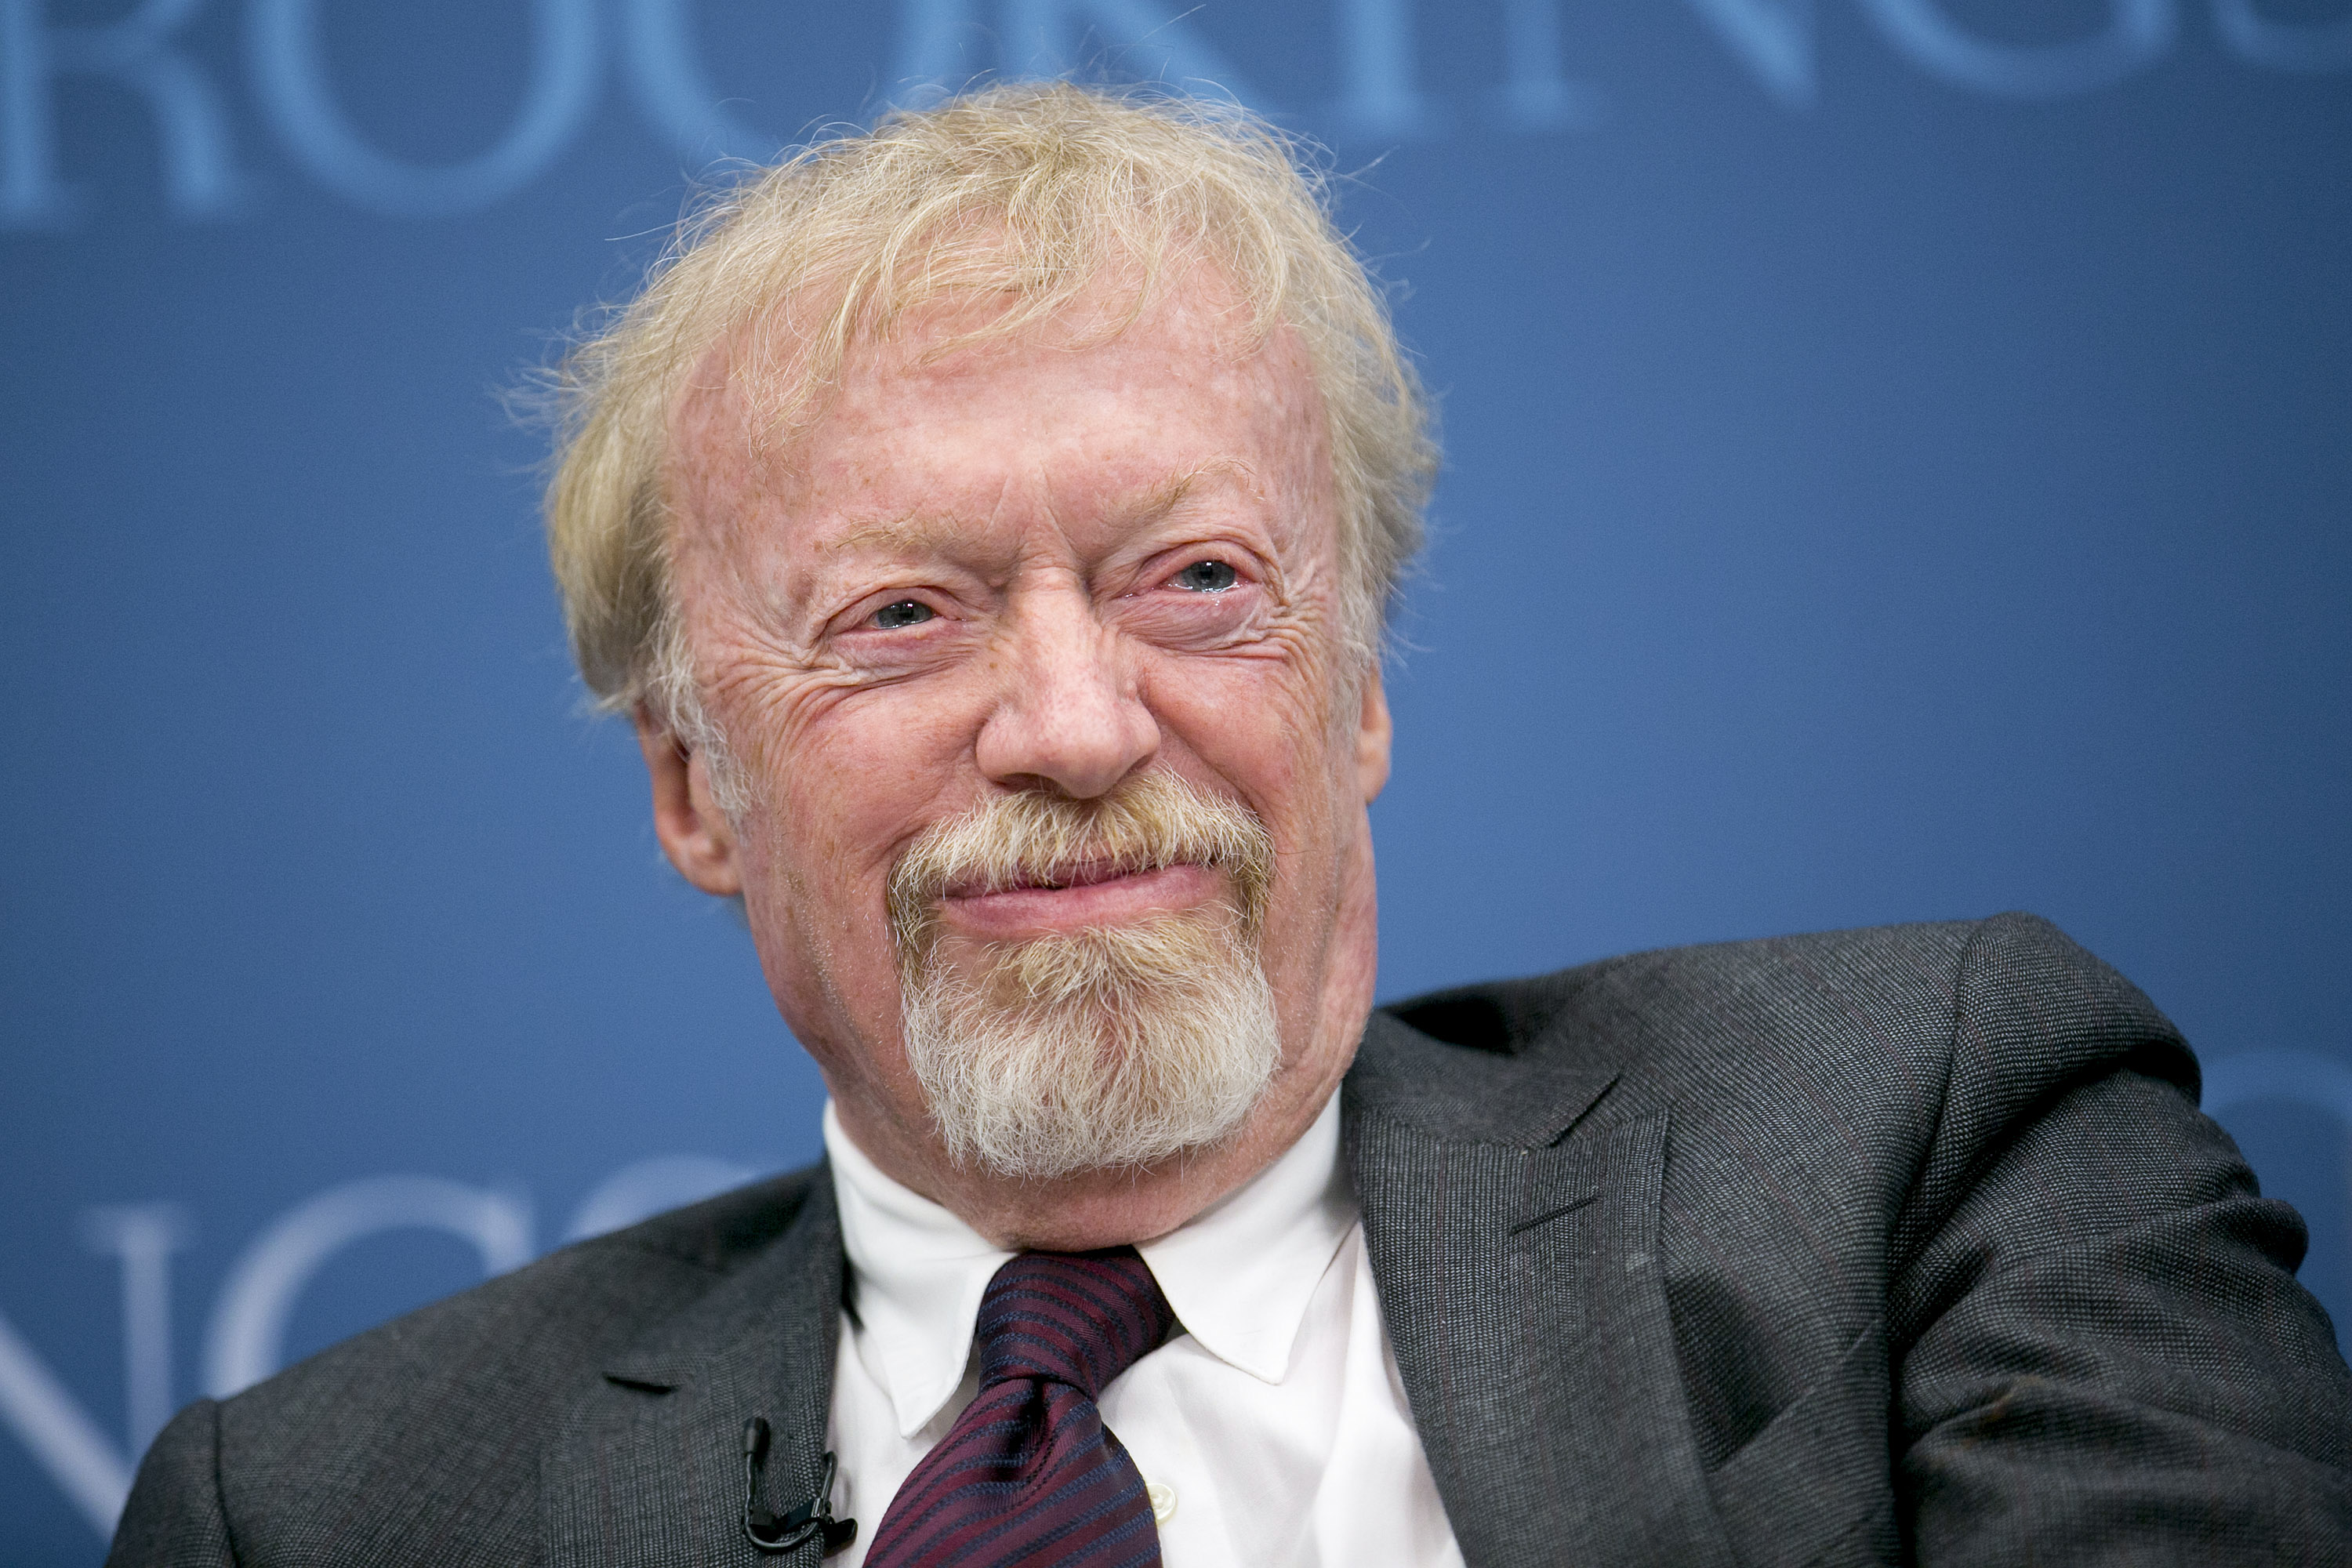 Phil Knight, chairman and co-founder of Nike Inc., laughs during a panel discussion at the Brookings Institution in Washington, D.C., U.S., on Tuesday, Jan. 15, 2013.